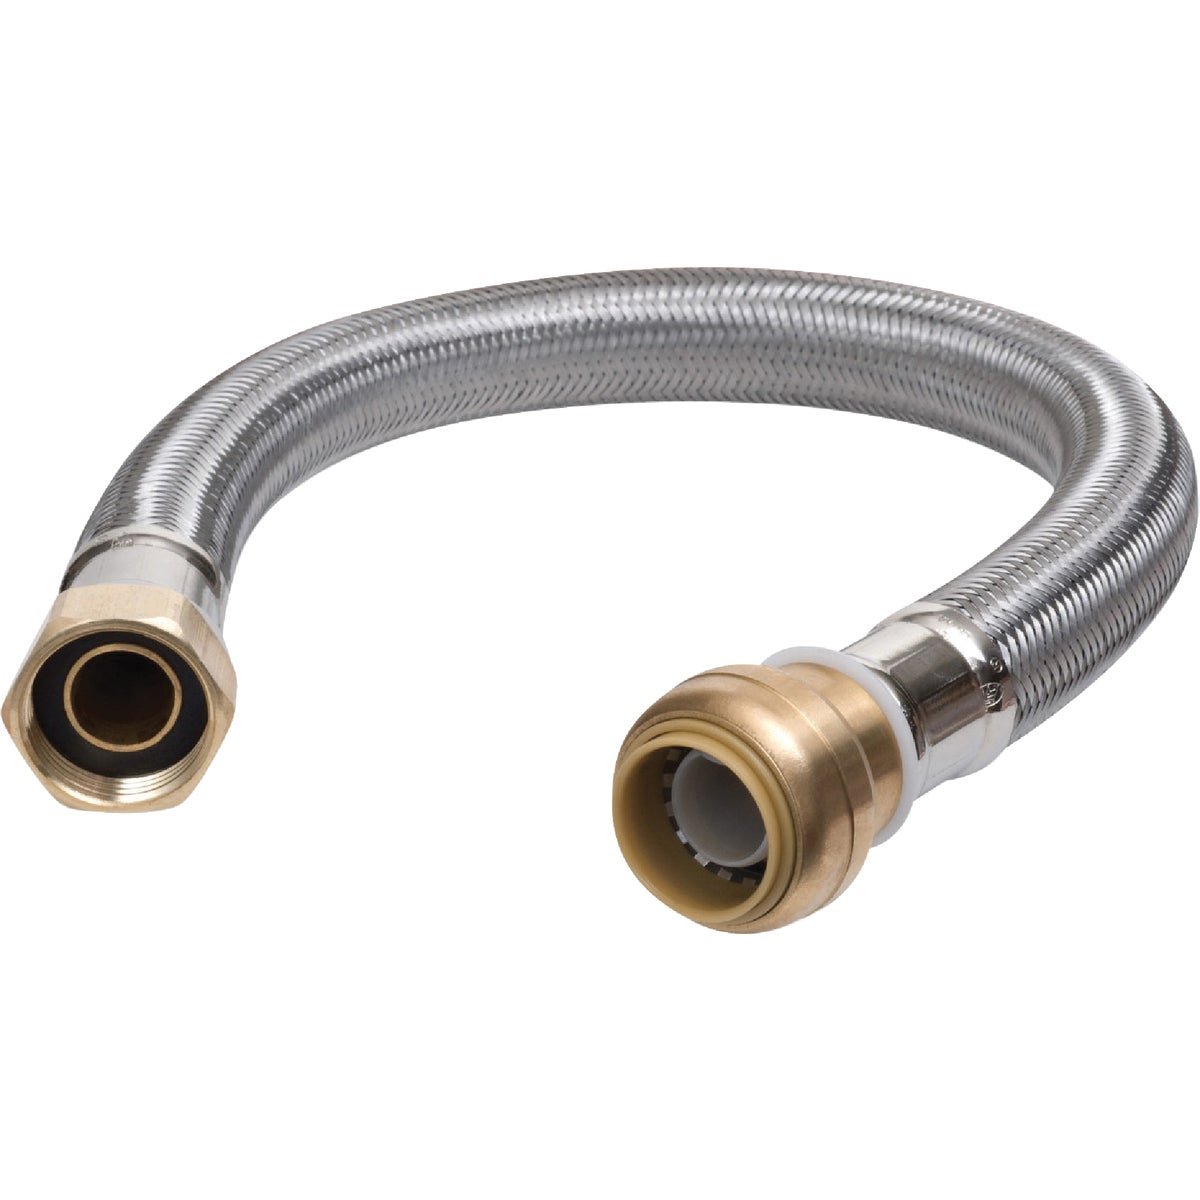 "18""SB WTR HTR CONNECTOR - U3088FLEX18LF by Cash Acme"